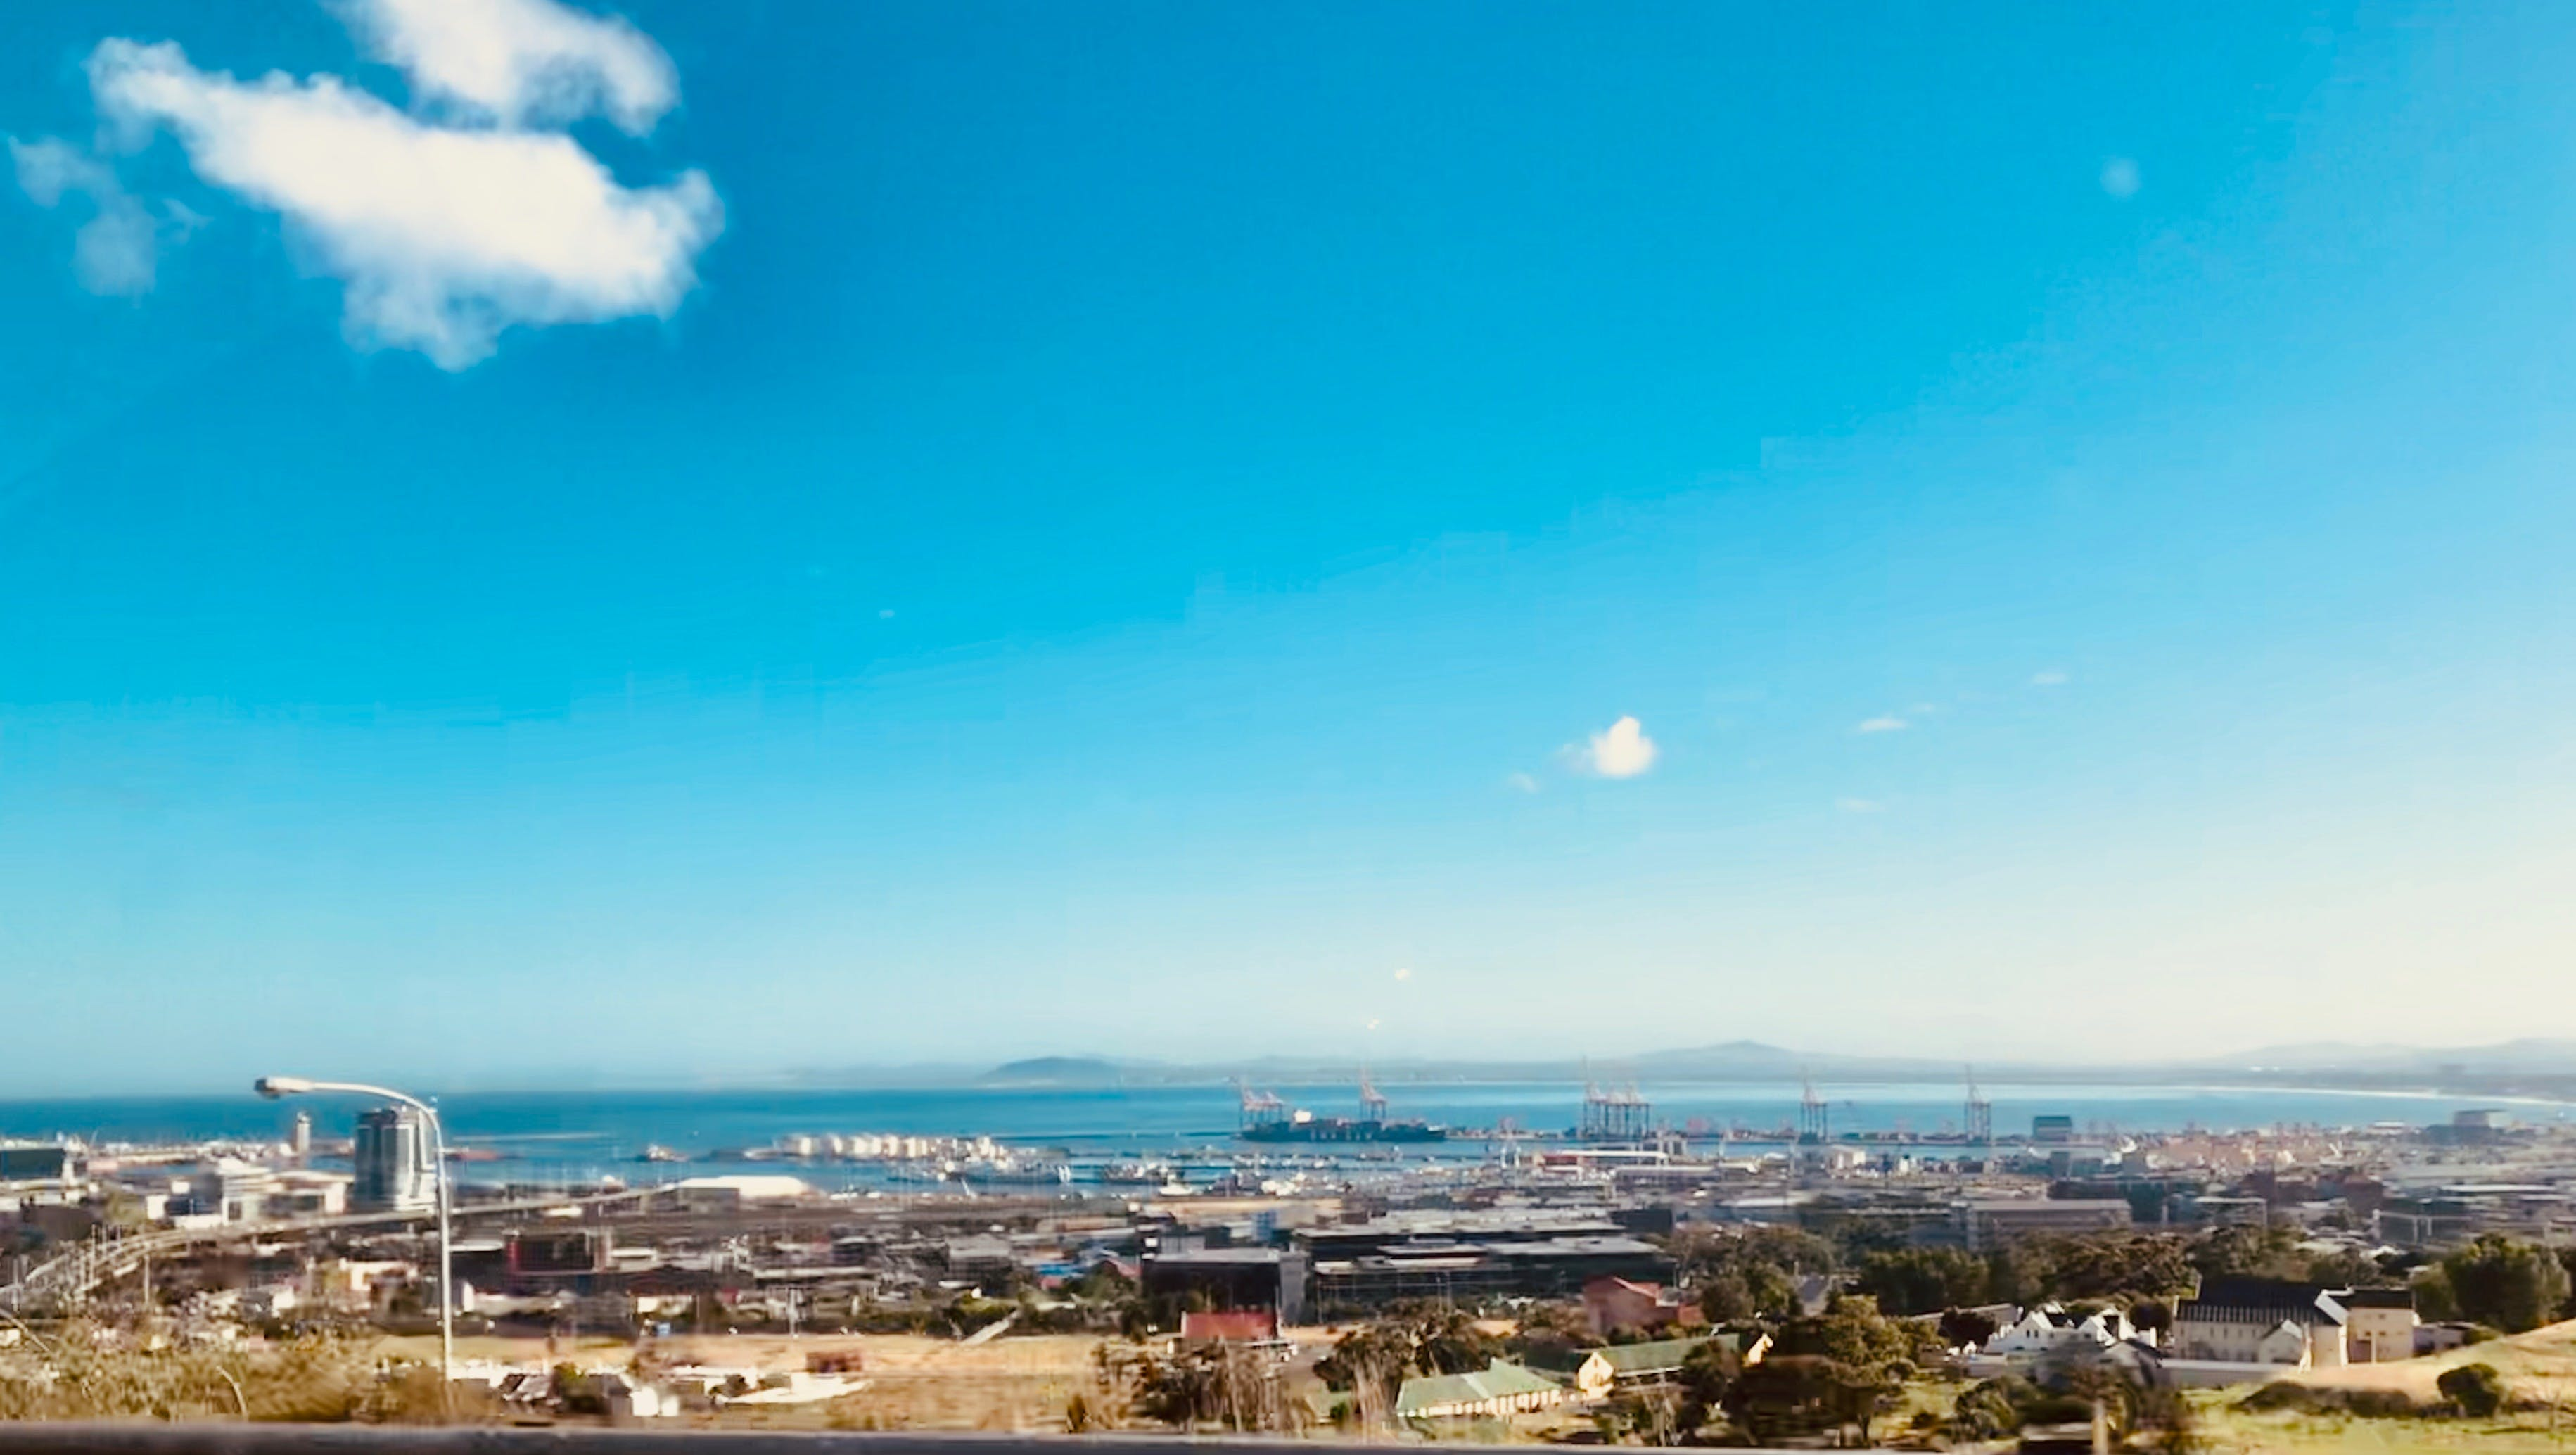 Free stock photo of Tablebay Harbour